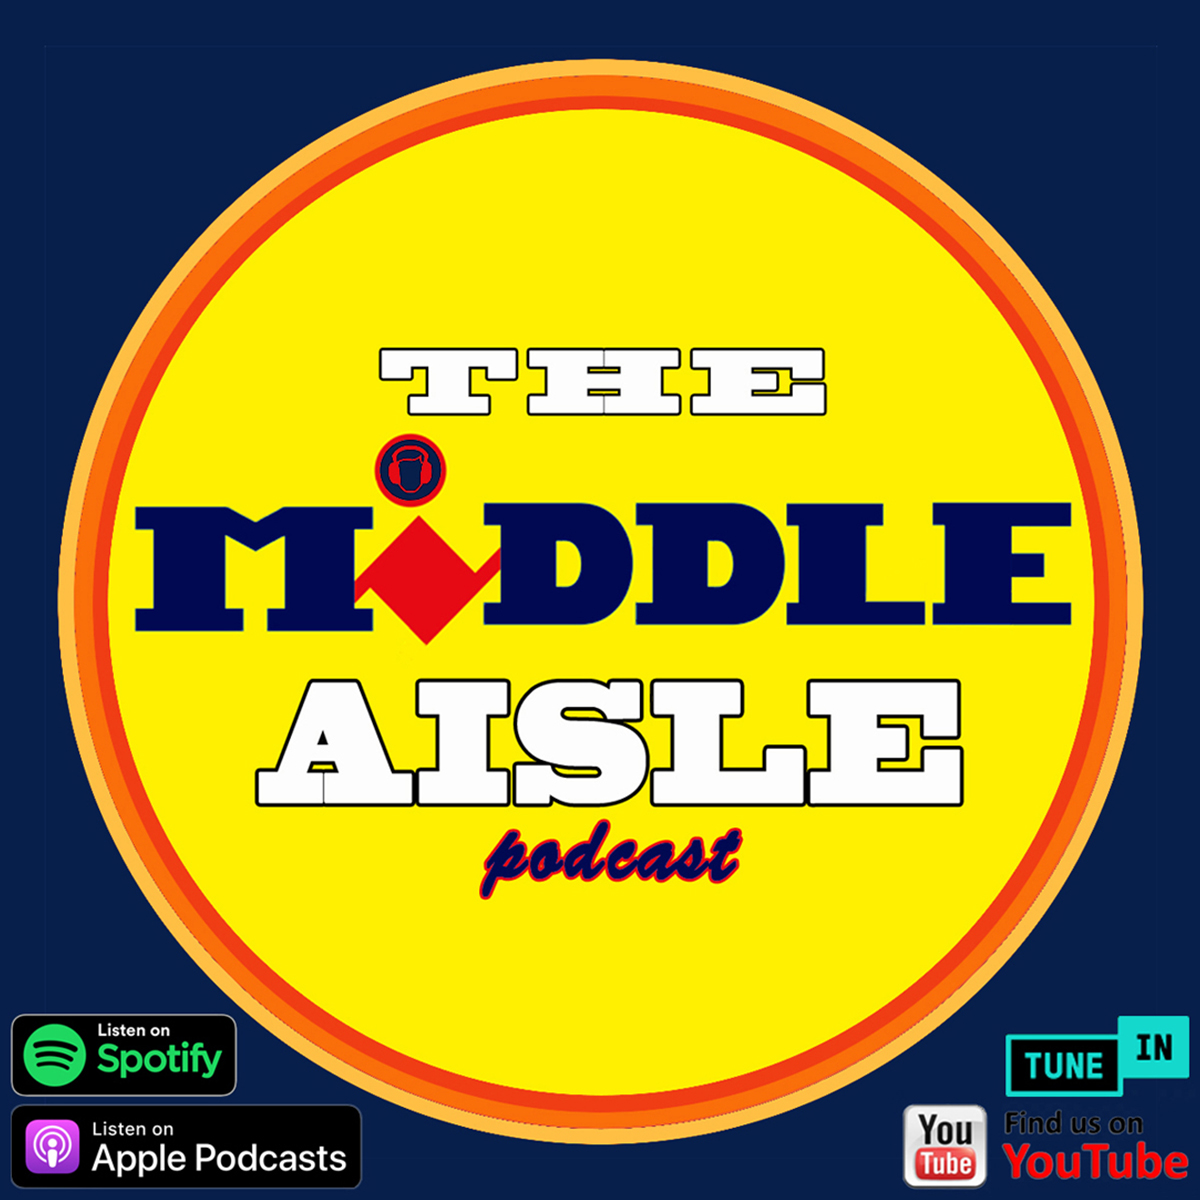 Hosted By The Middle Aisle Podcast